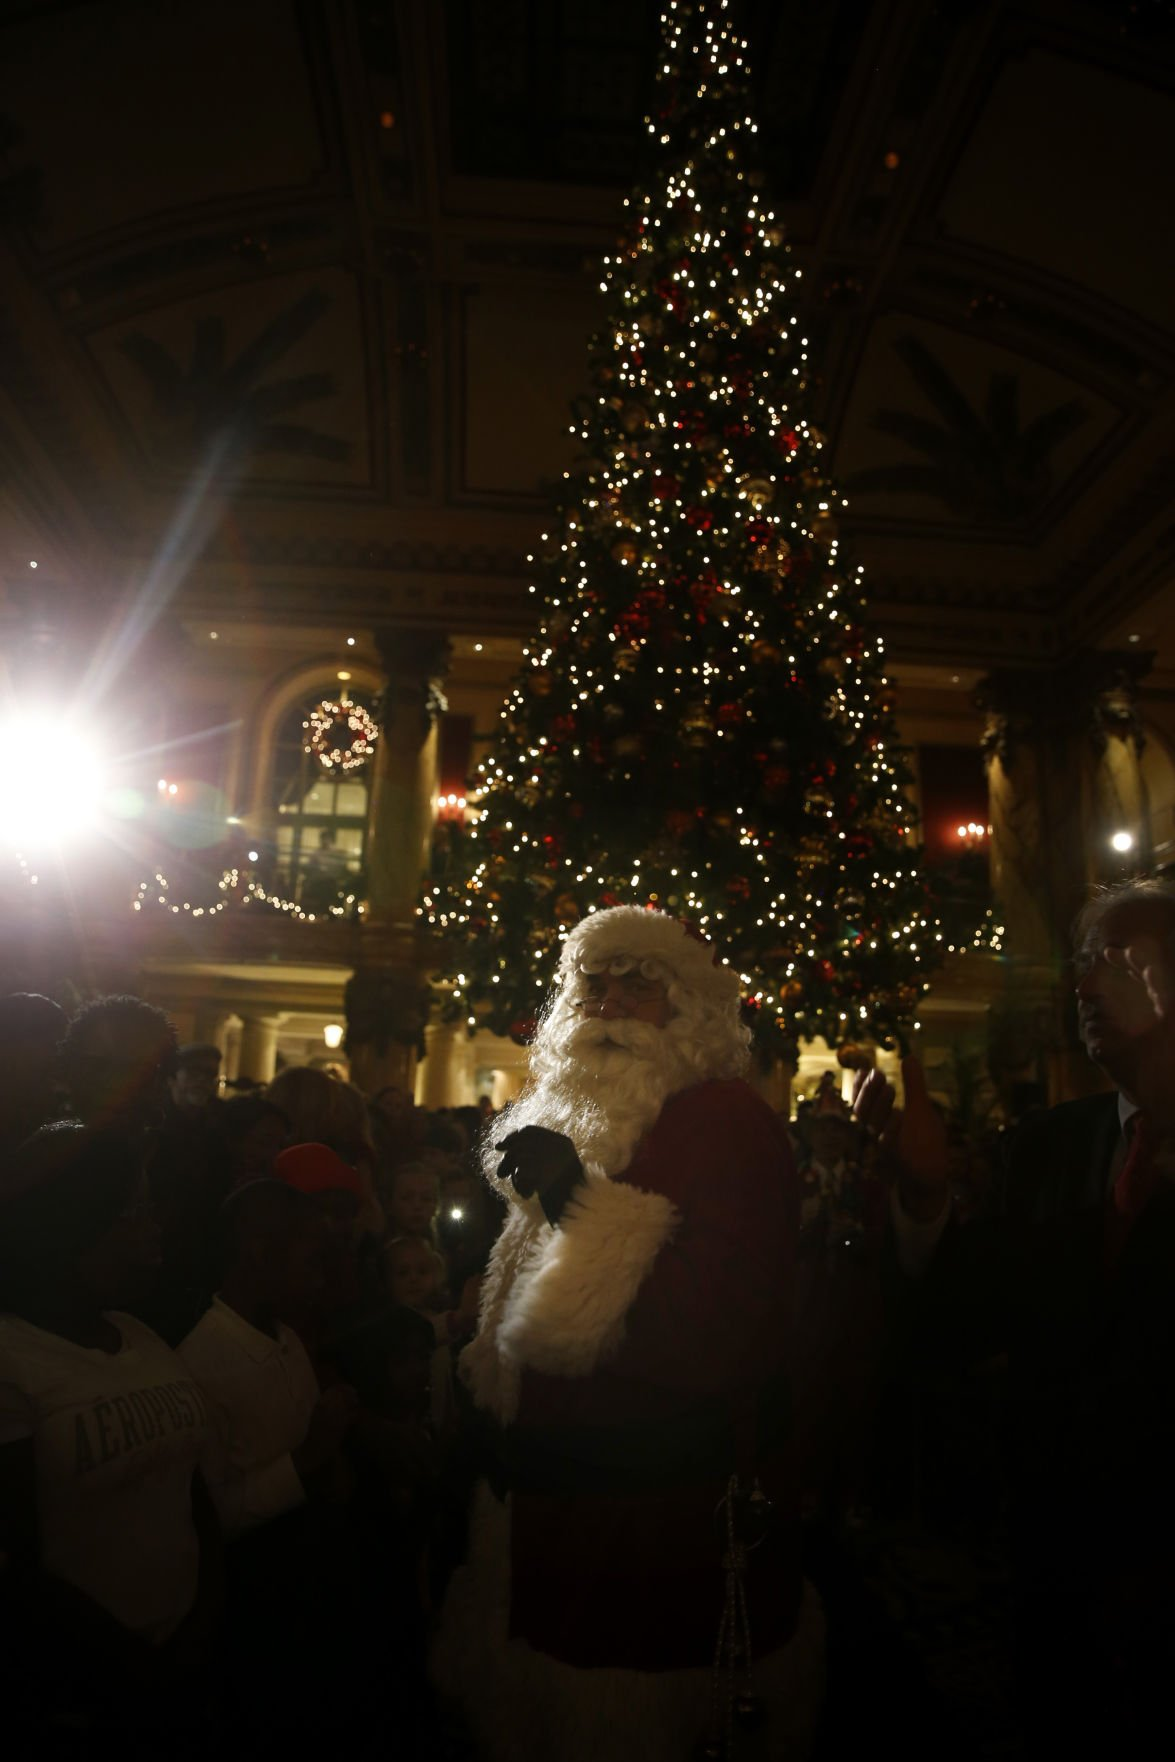 The Jefferson Hotel lights up for the holidays